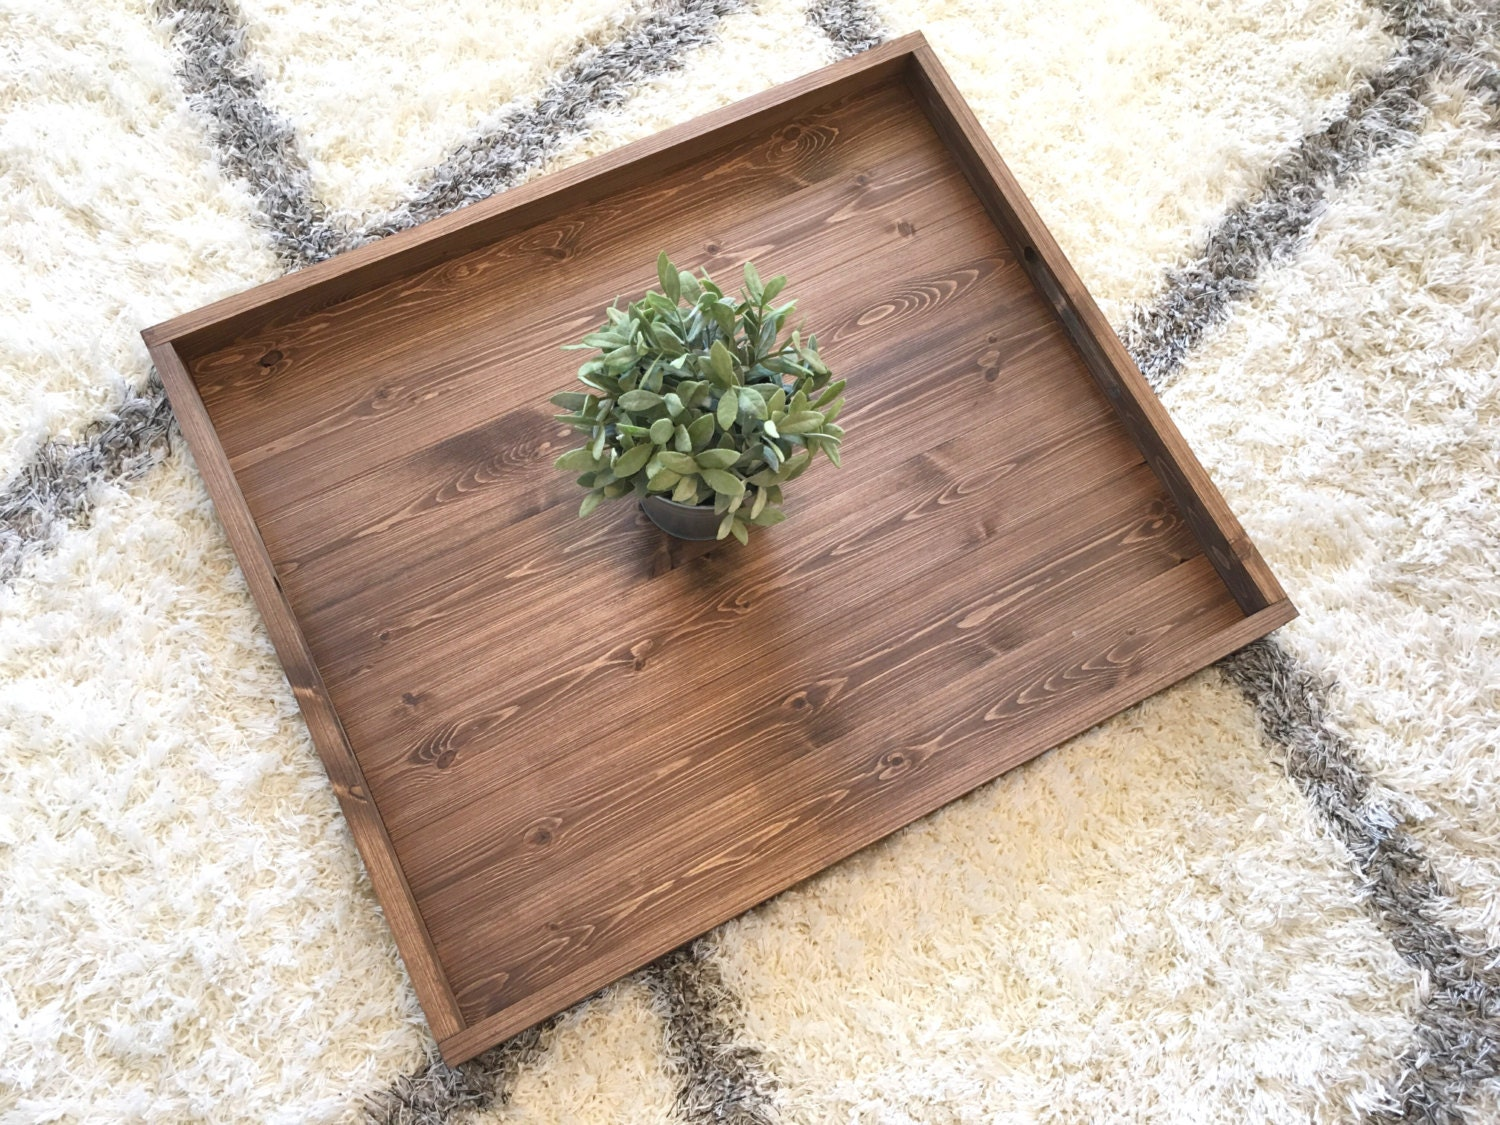 Rustic Wooden Ottoman Tray, Ottoman Tray, Wooden Tray, Rustic Decor,  Farmhouse Decor, Rustic Home Decor, Serving Tray, Coffee Table Tray